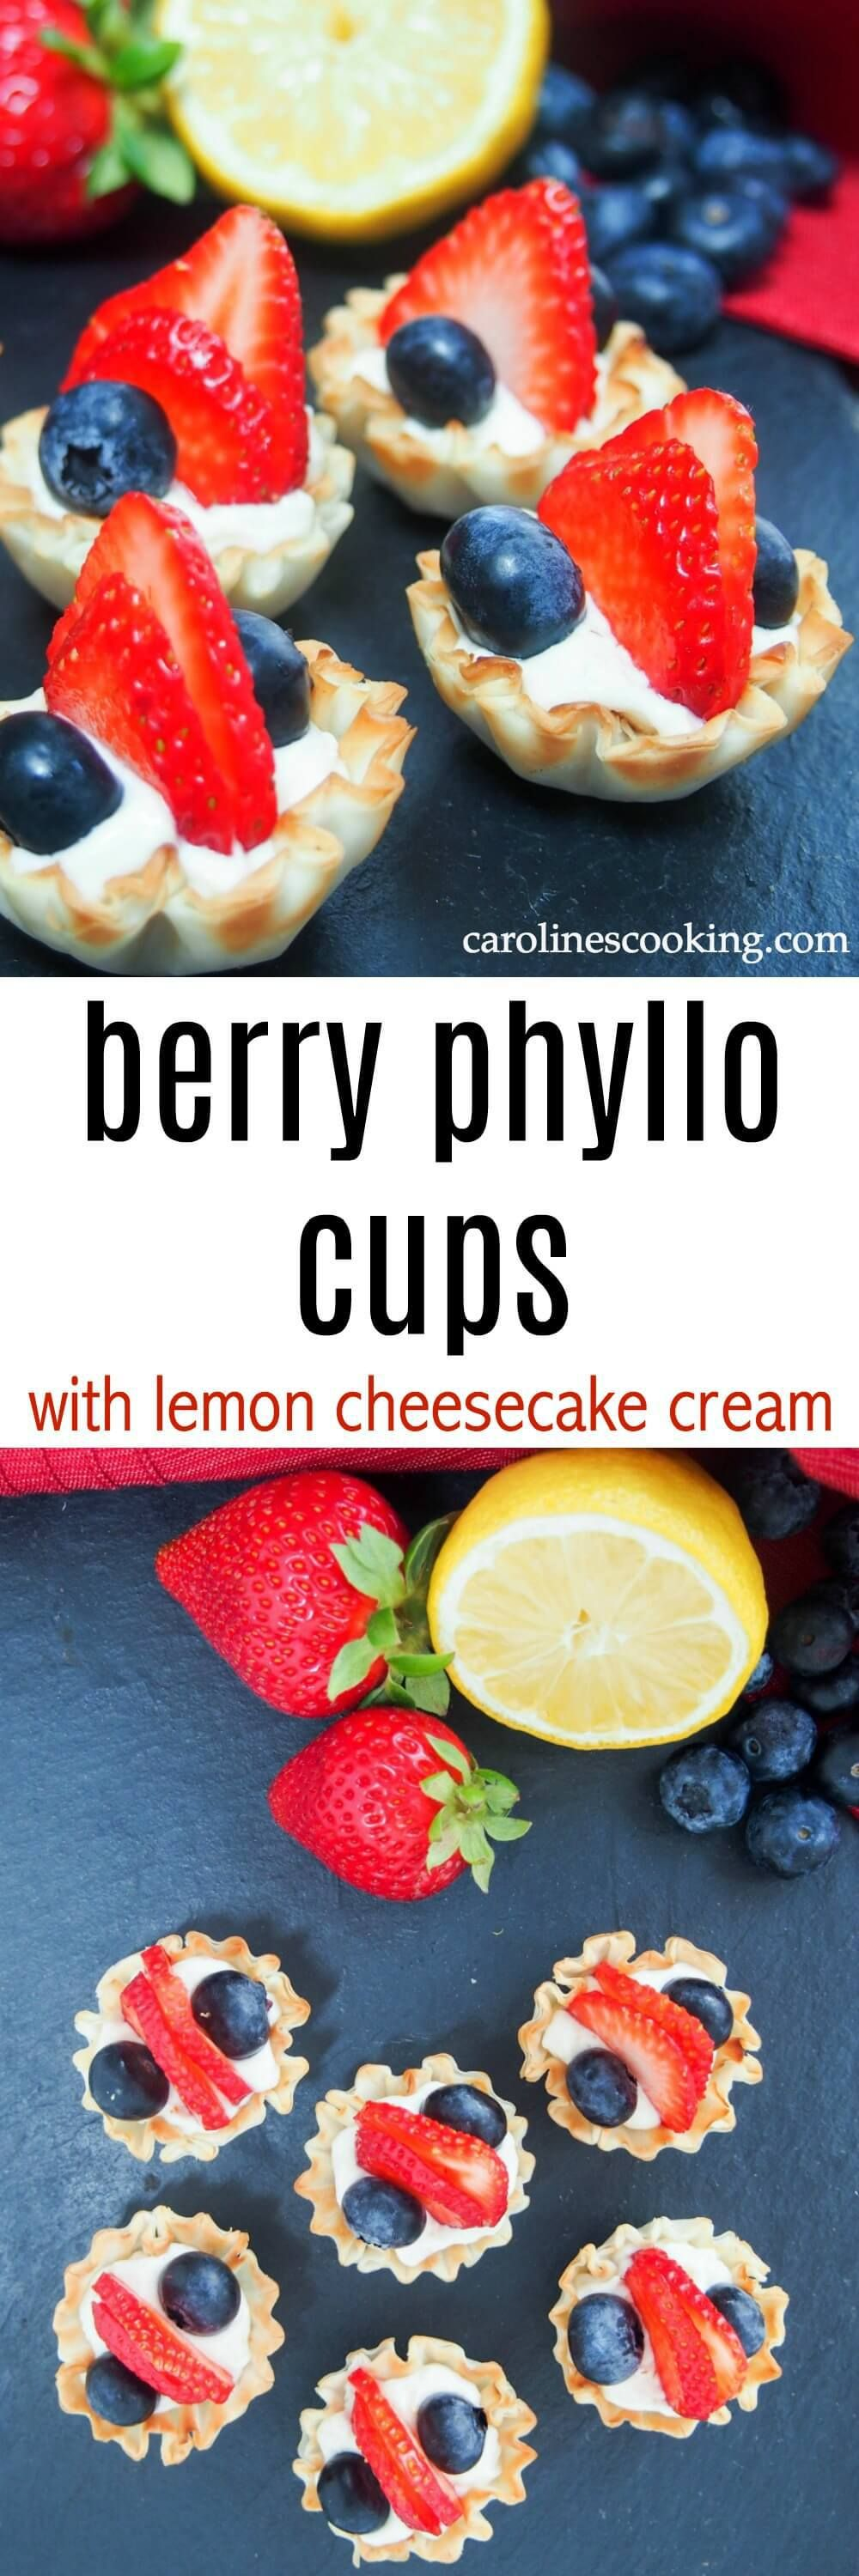 These berry phyllo cups with lemon cheesecake cream take only a few minutes to p… appetierz capre